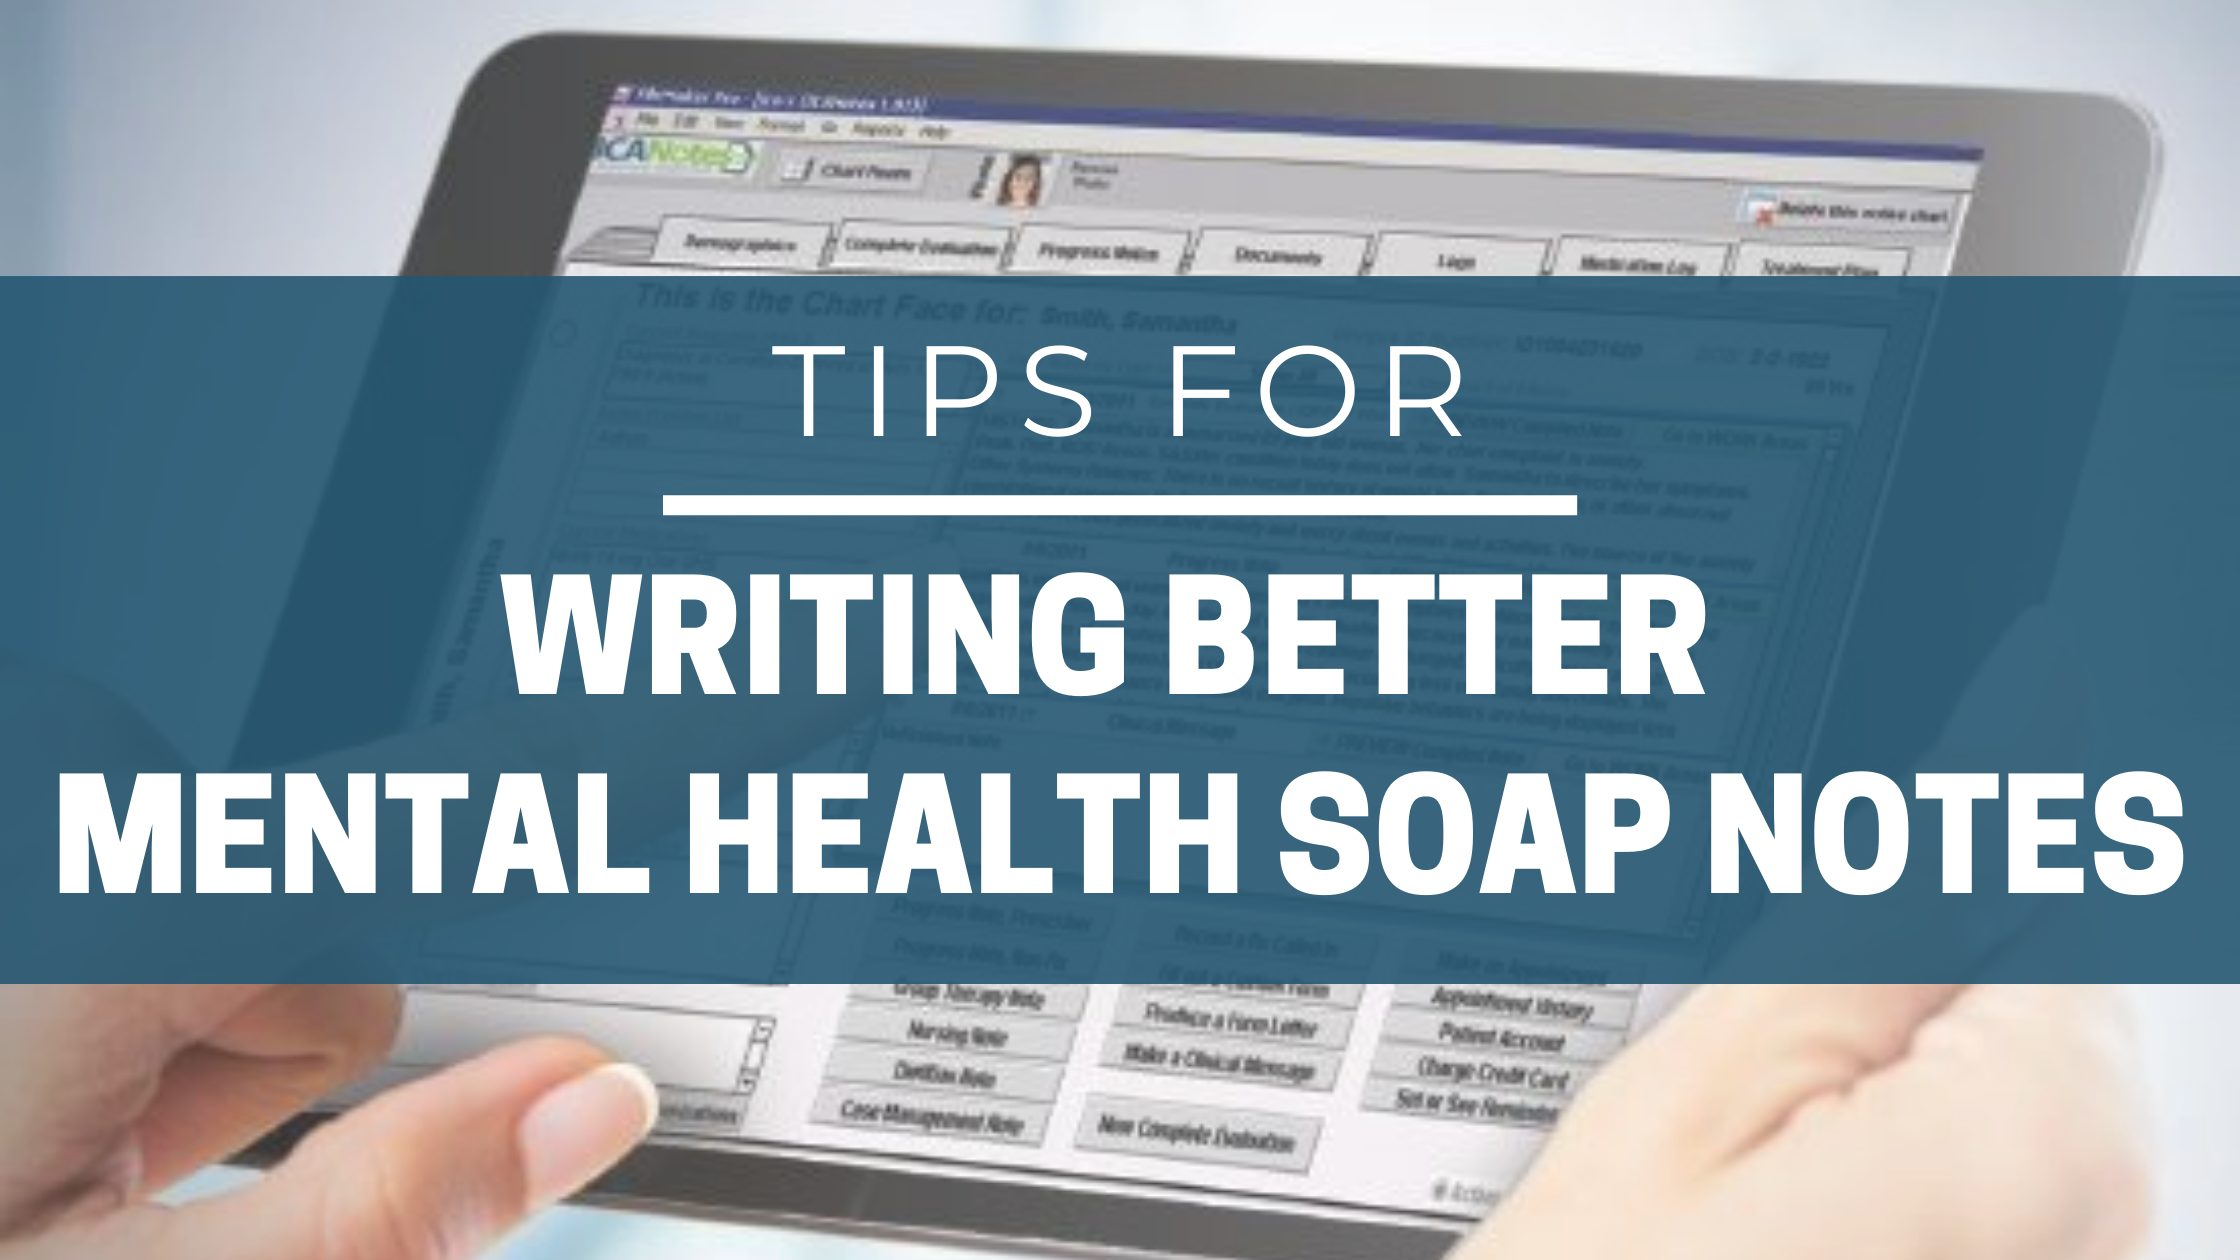 Tips for Writing Better SOAP Notes